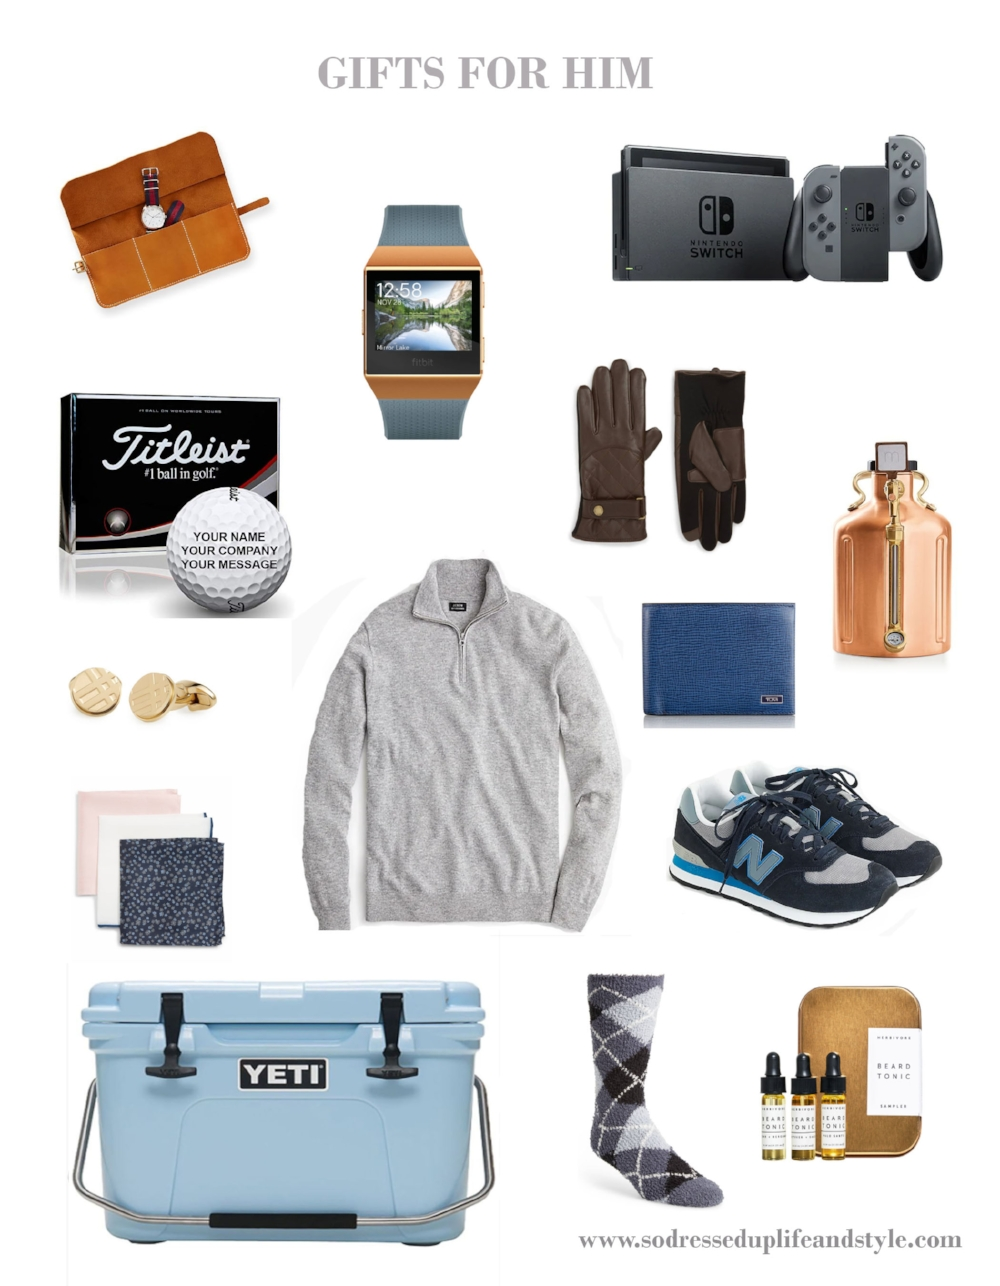 2018 Gifts for Him.jpg